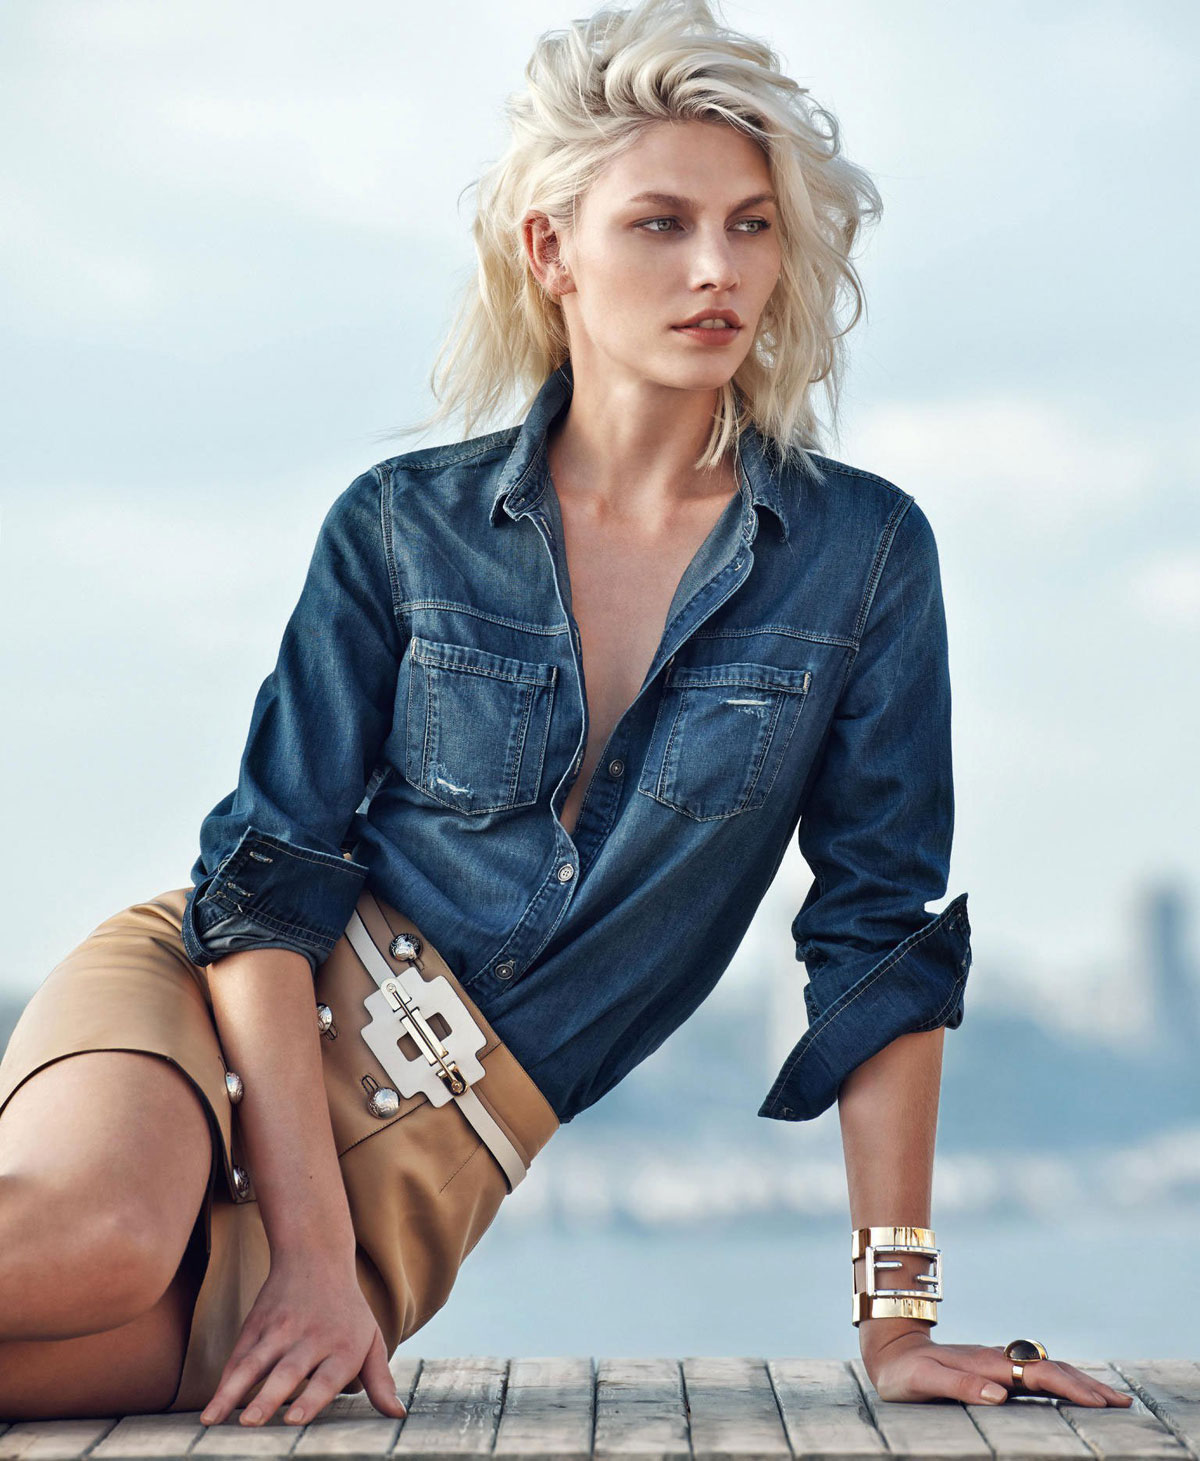 ALINE WEBER – Porter Magazine Photoshoot by Chris Colls